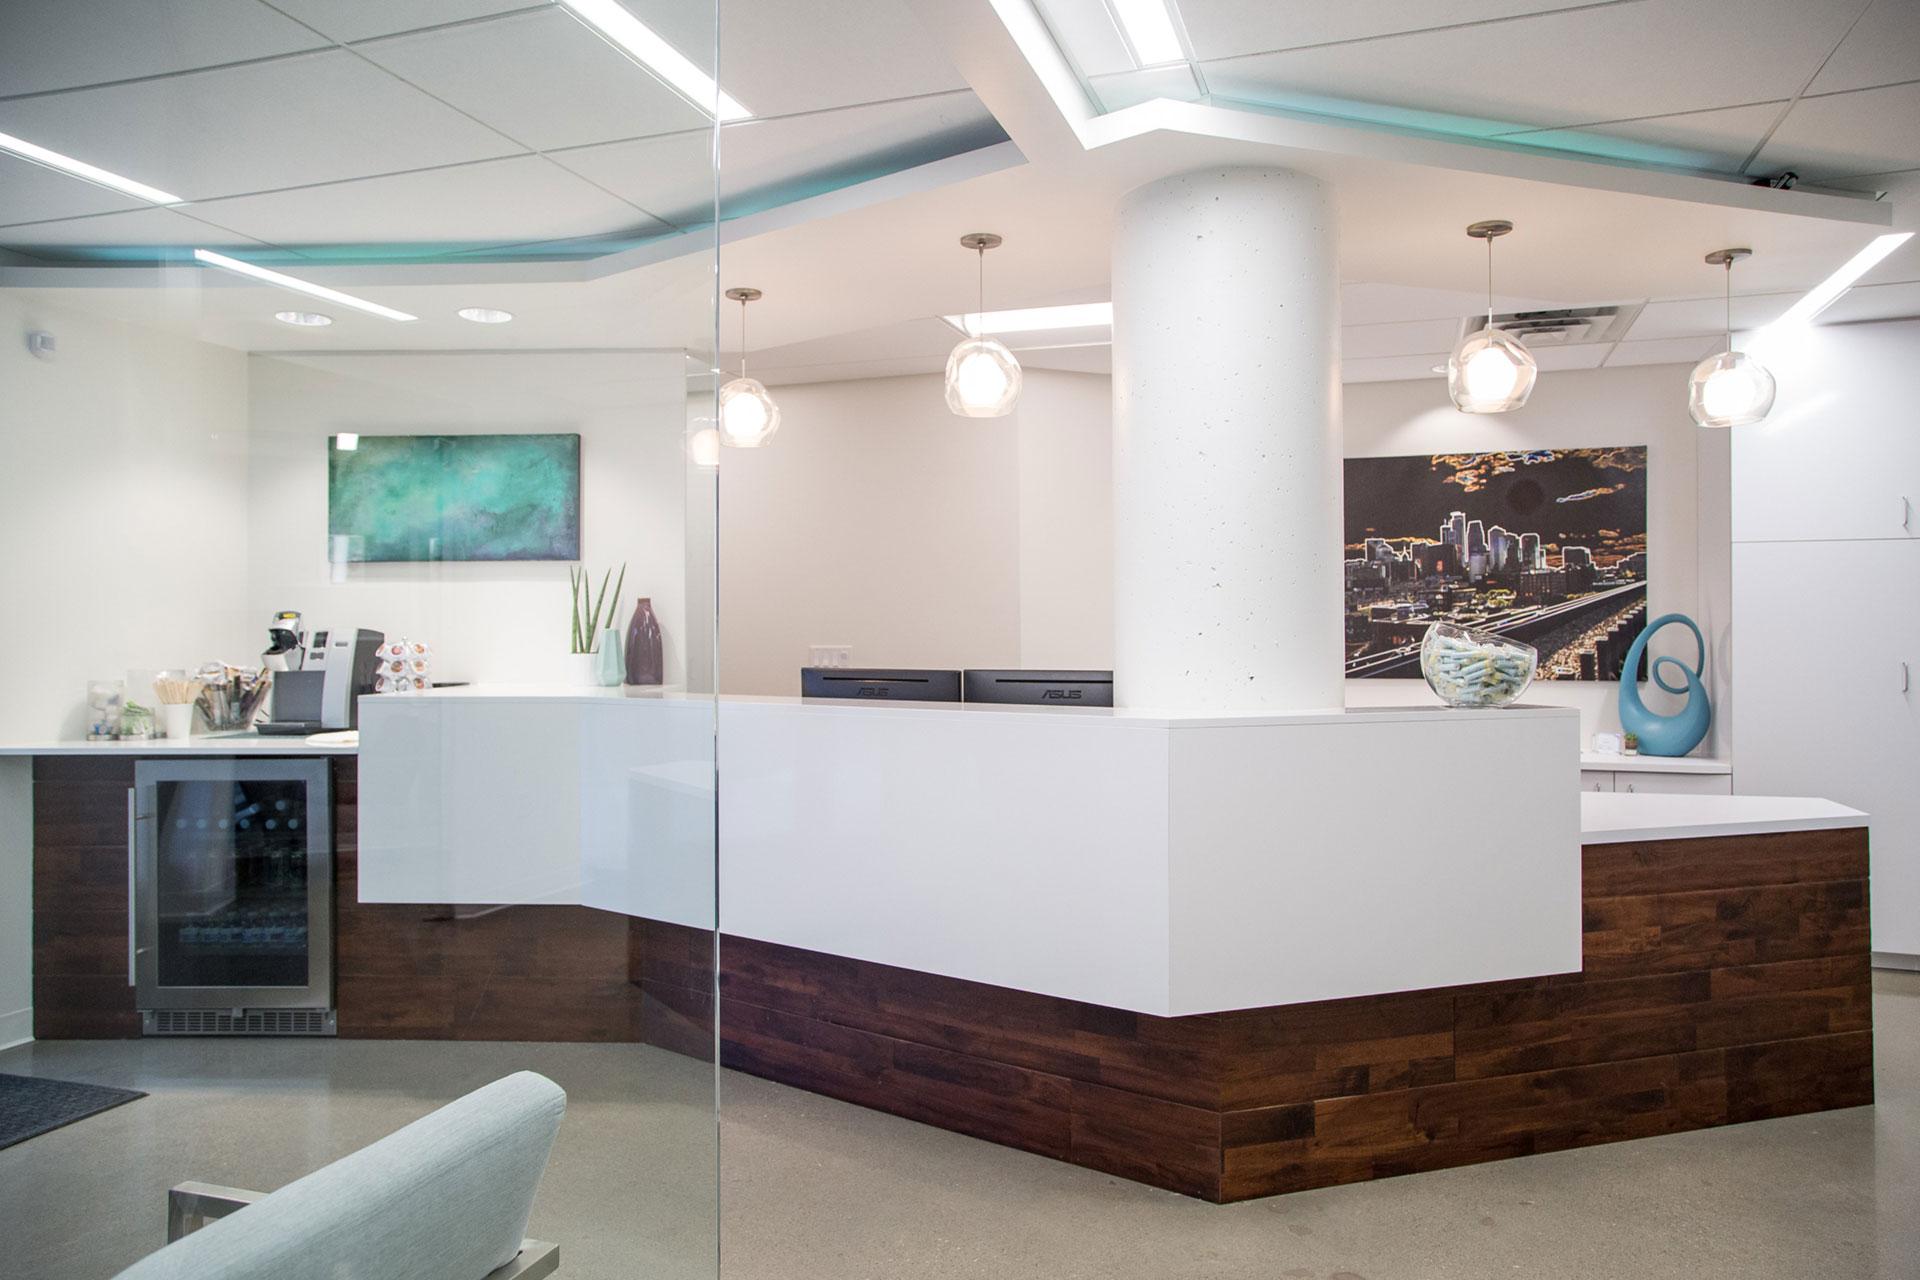 The interior of the Loop Dental office looks sleek and inviting for new dental patients.